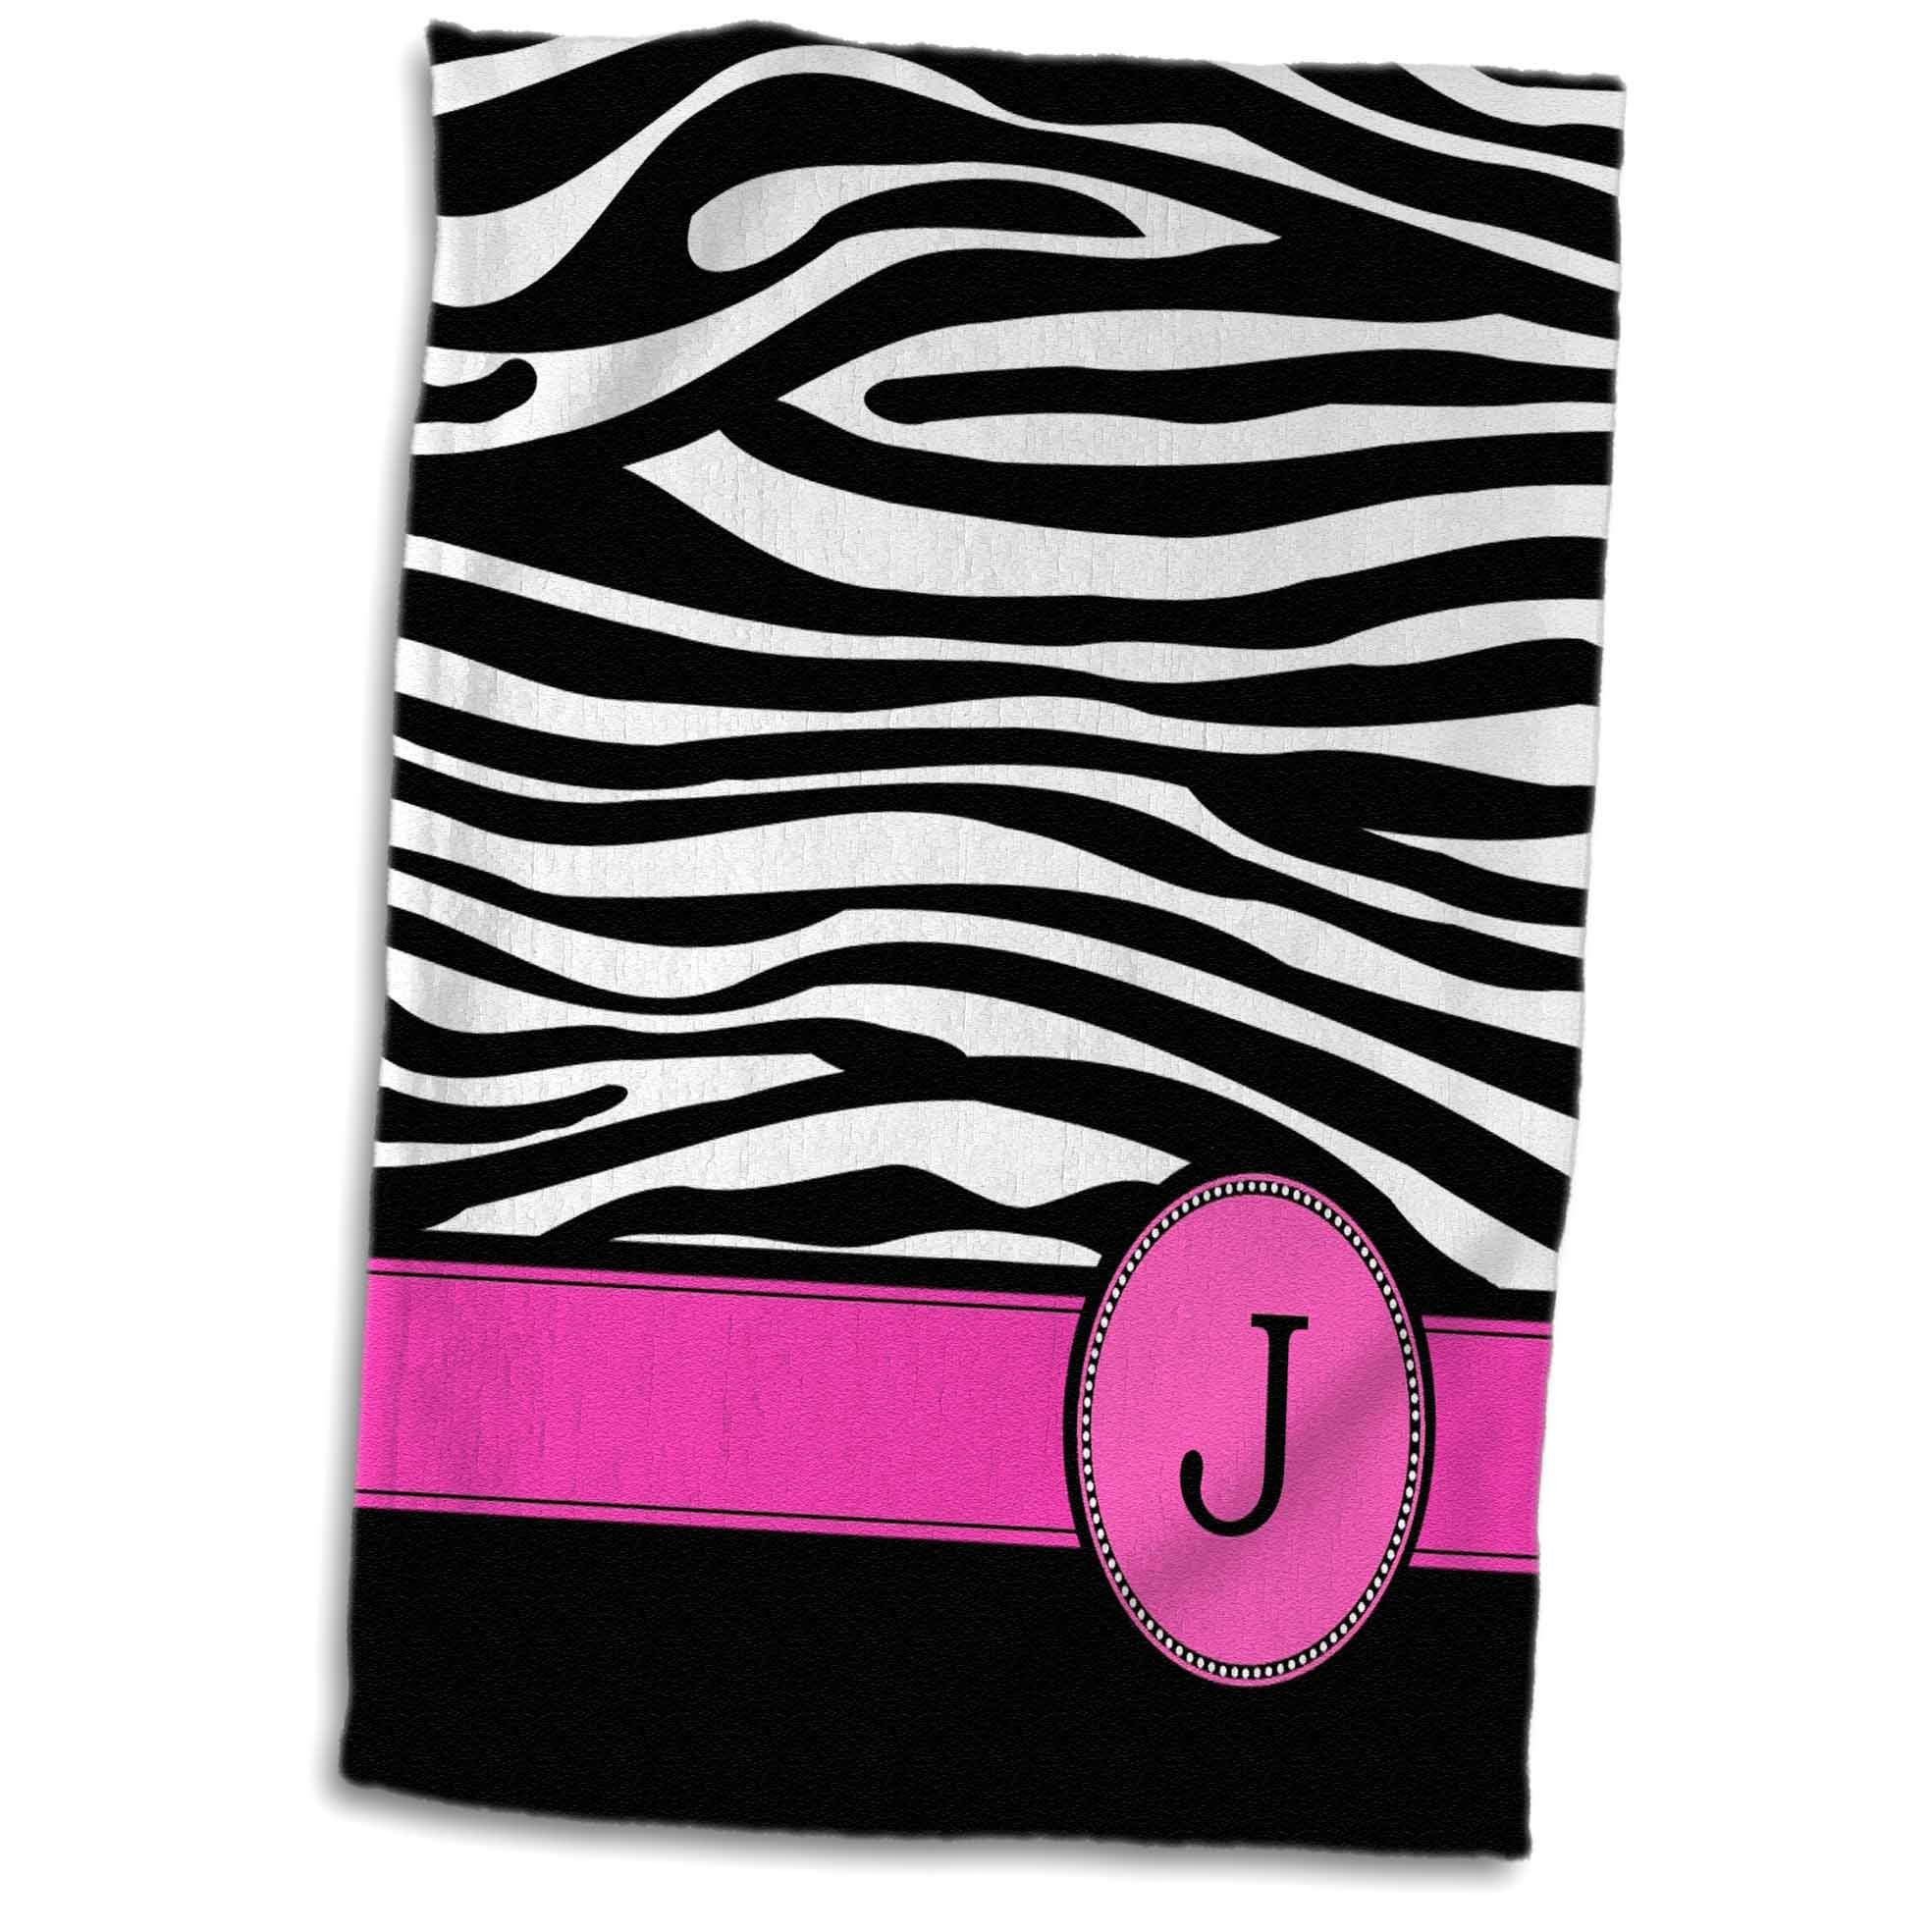 3dRose Letter J monogrammed black and white zebra stripes animal print with hot pink personalized initial - Towel, 15 by 22-inch